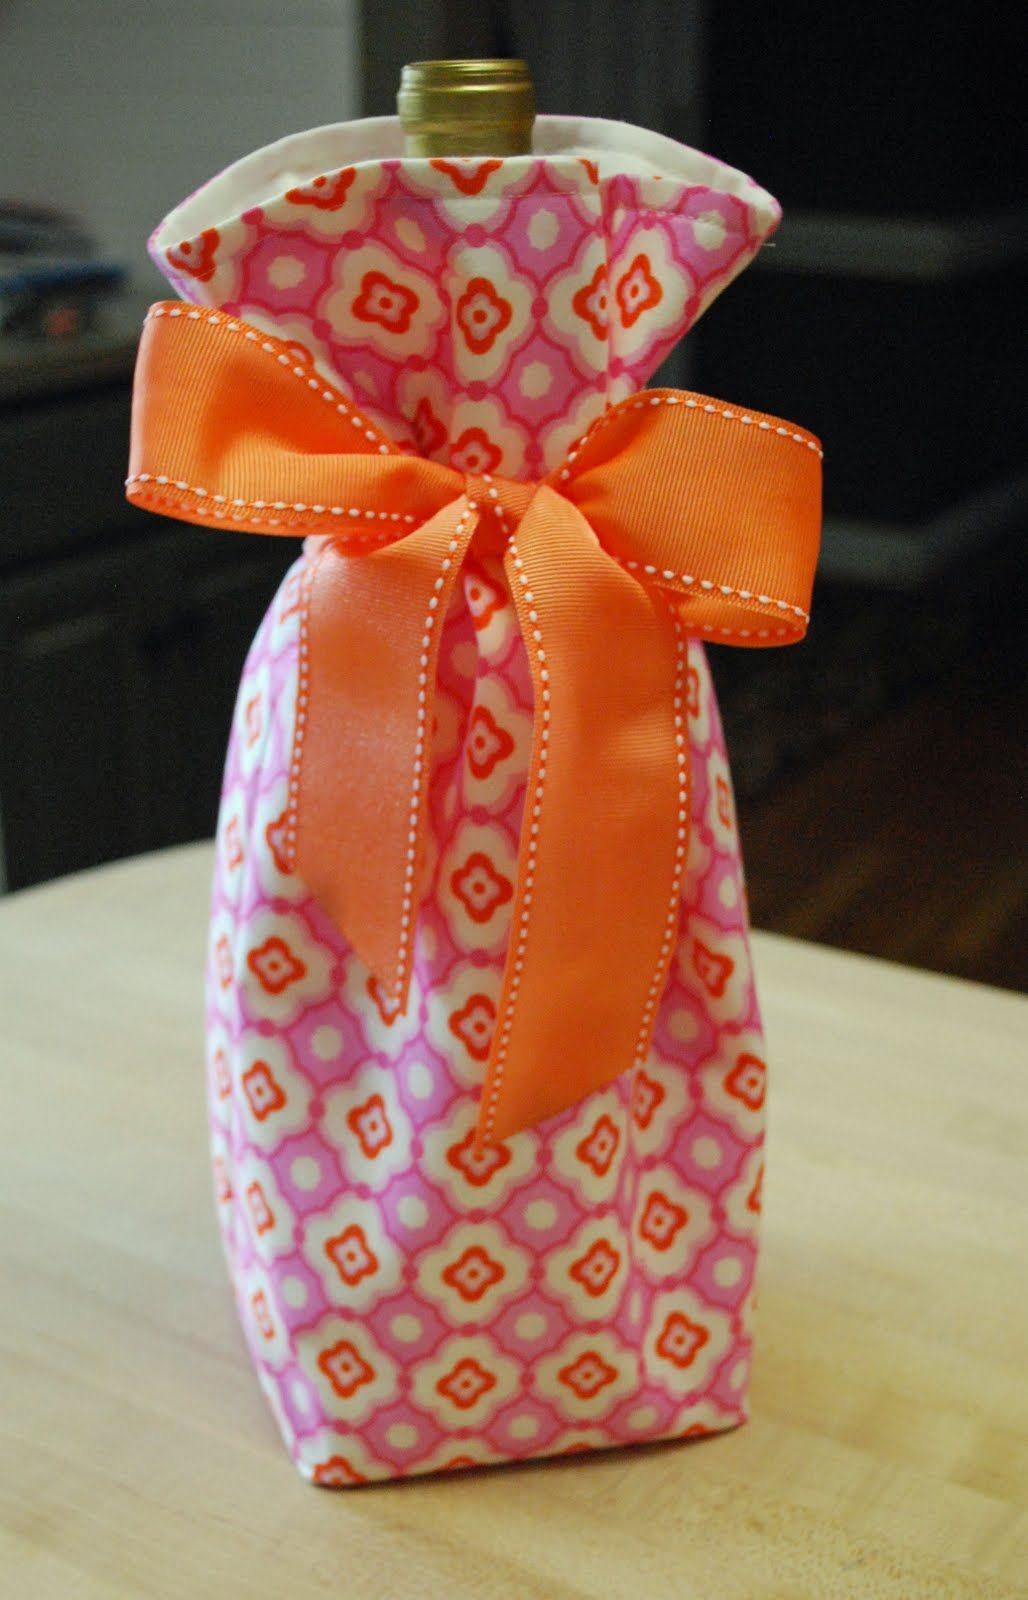 Okay Here It Is The Wine Bottle Bag Tutorial I Did It Pretty Quickly So I Hope There Are No Mistakes Wine Bag Pattern Wine Bottle Gift Bag Wine Bottle Bag